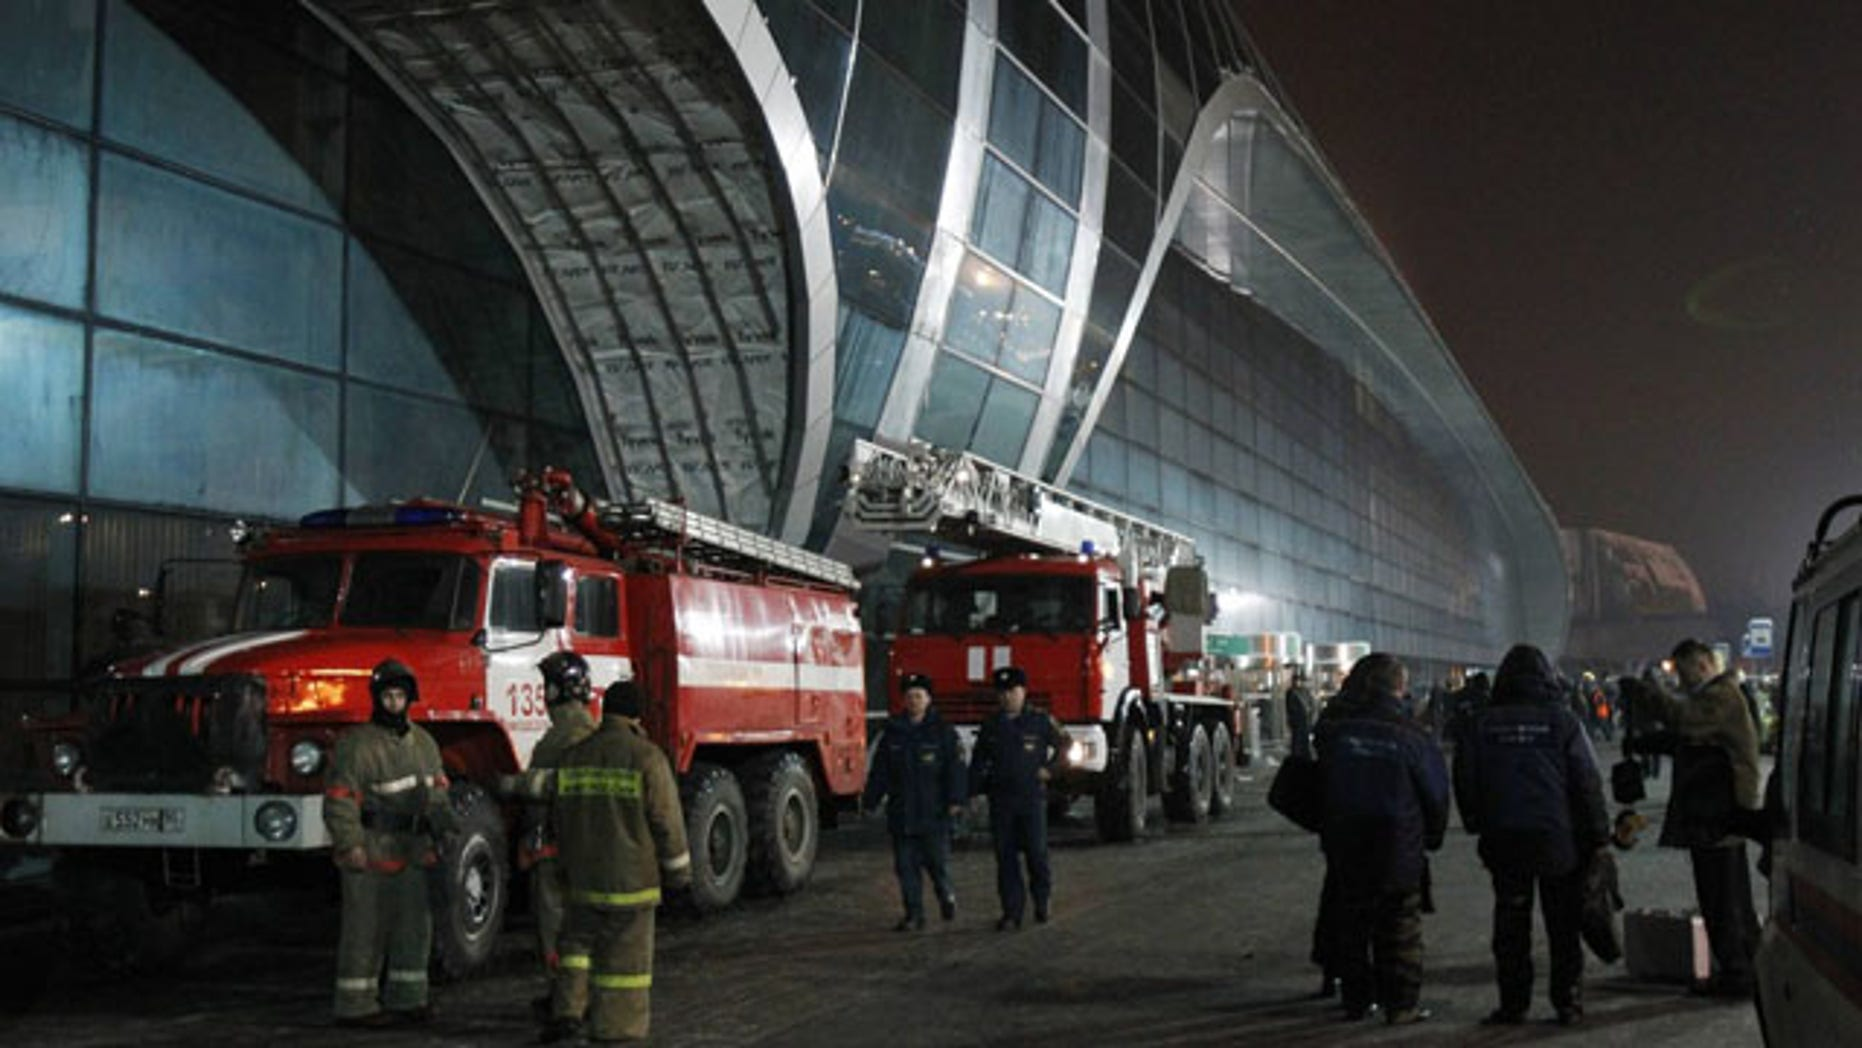 Jan. 24: Firefighters work outside Moscow's Domodedovo airport. A suicide bomber killed at least 31 people and injured 180.